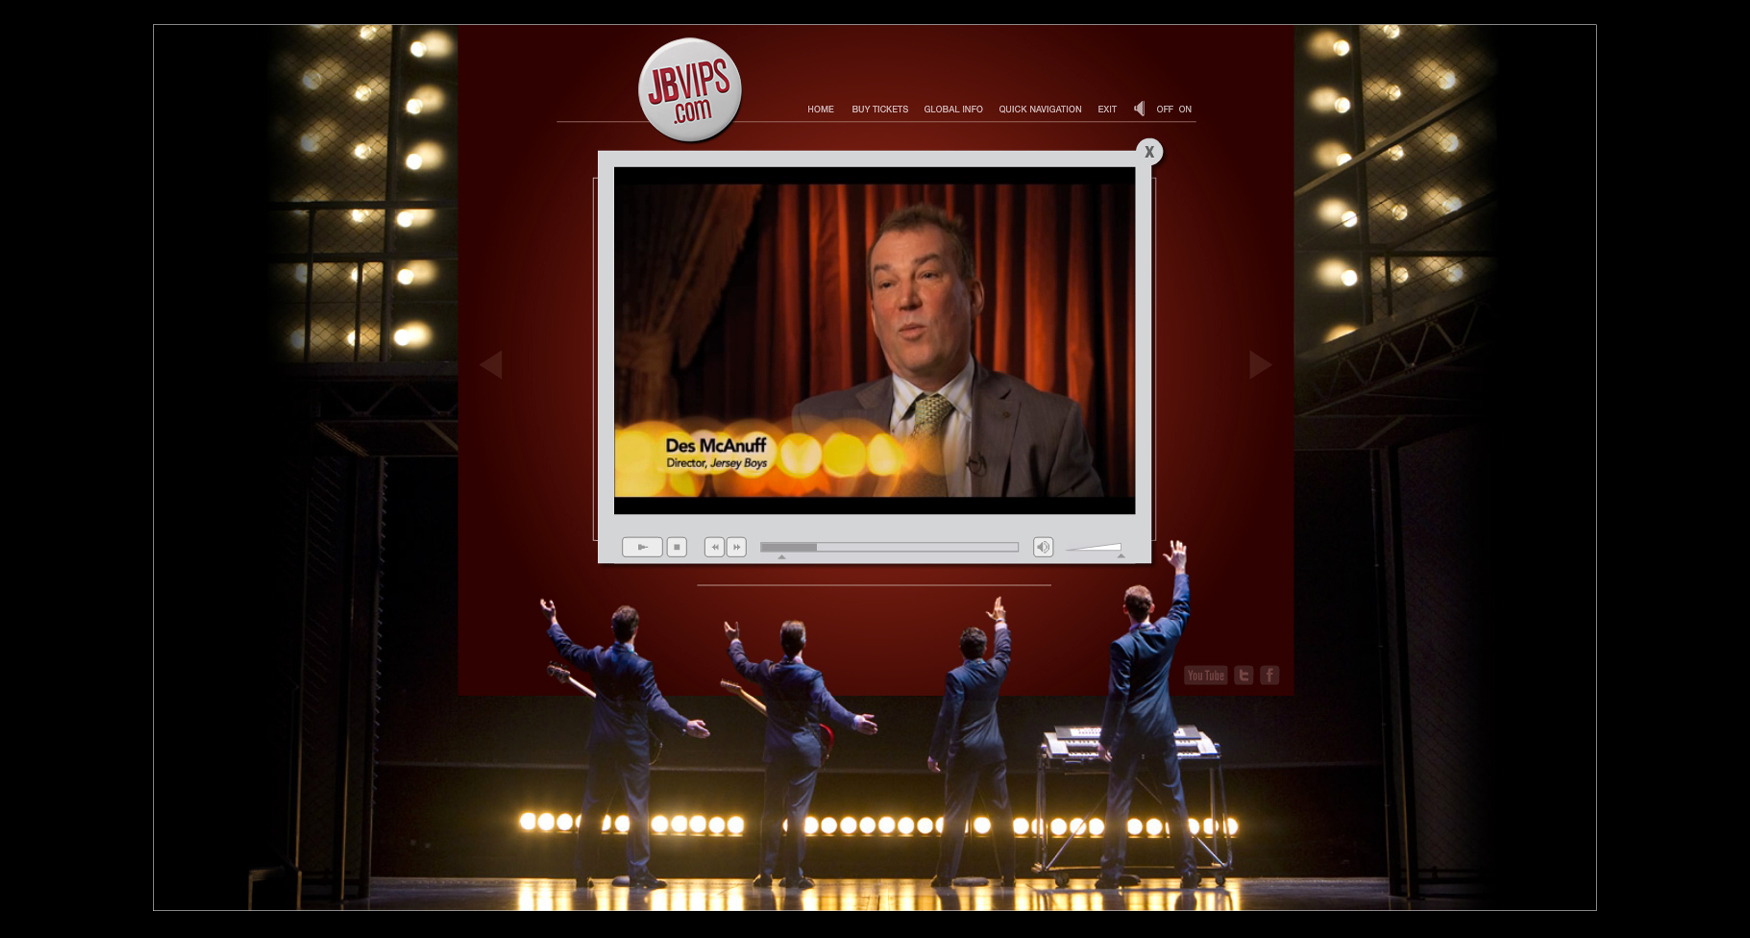 BP Large Images45 - JERSEY BOYS - HIDDEN REWARDS SECTION